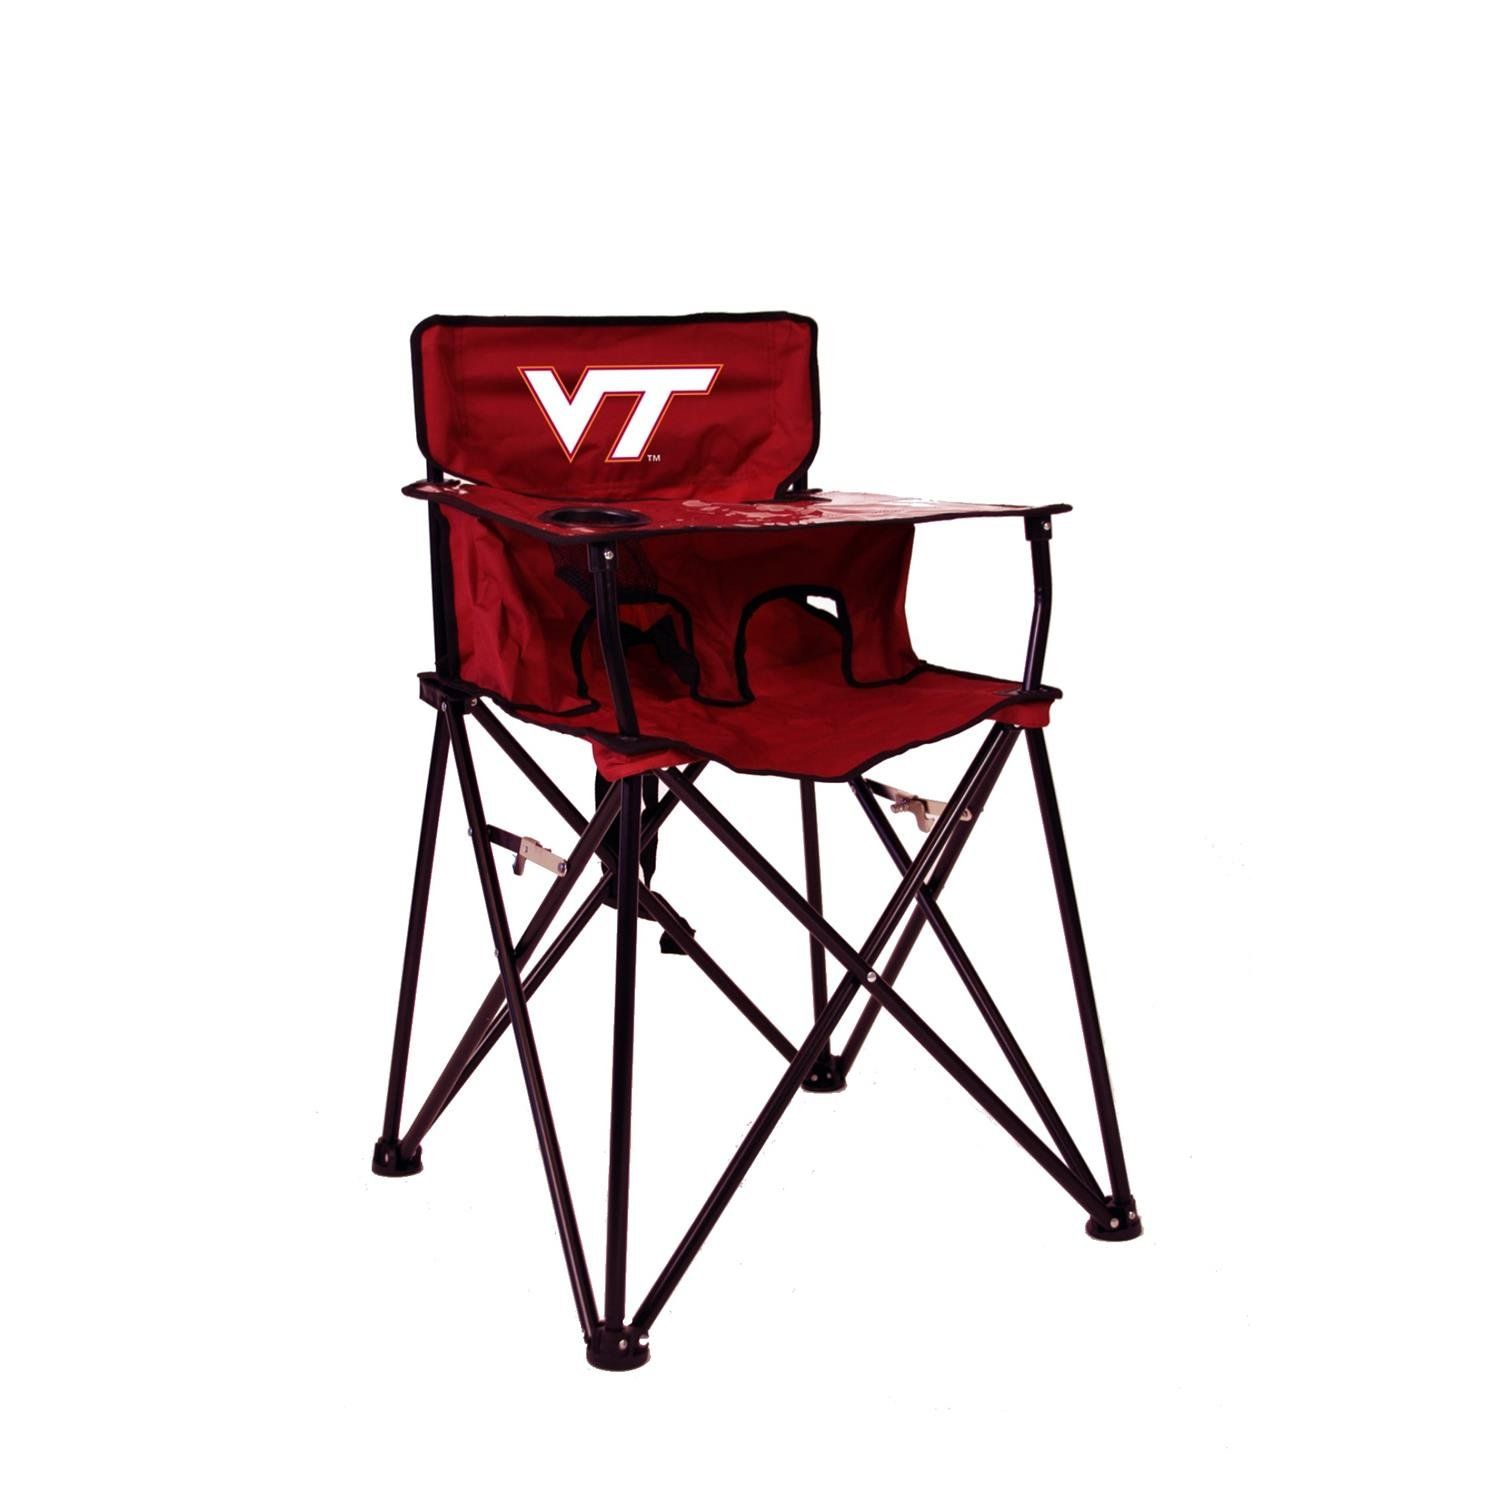 VIRGINIA TECH HOKIES NCAA ULTIMATE TRAVEL CHILD HIGH CHAIR. Your little one gets to show team spirit with this portable & free-standing chair. Requires no assembly--easily unfolds, locks into place, and folds back up in seconds. Durable material with a clear vinyl tray cover that easily wipes clean. Comfortable lap belt securely holds child. This go anywhere highchair for children up to 35 pounds.